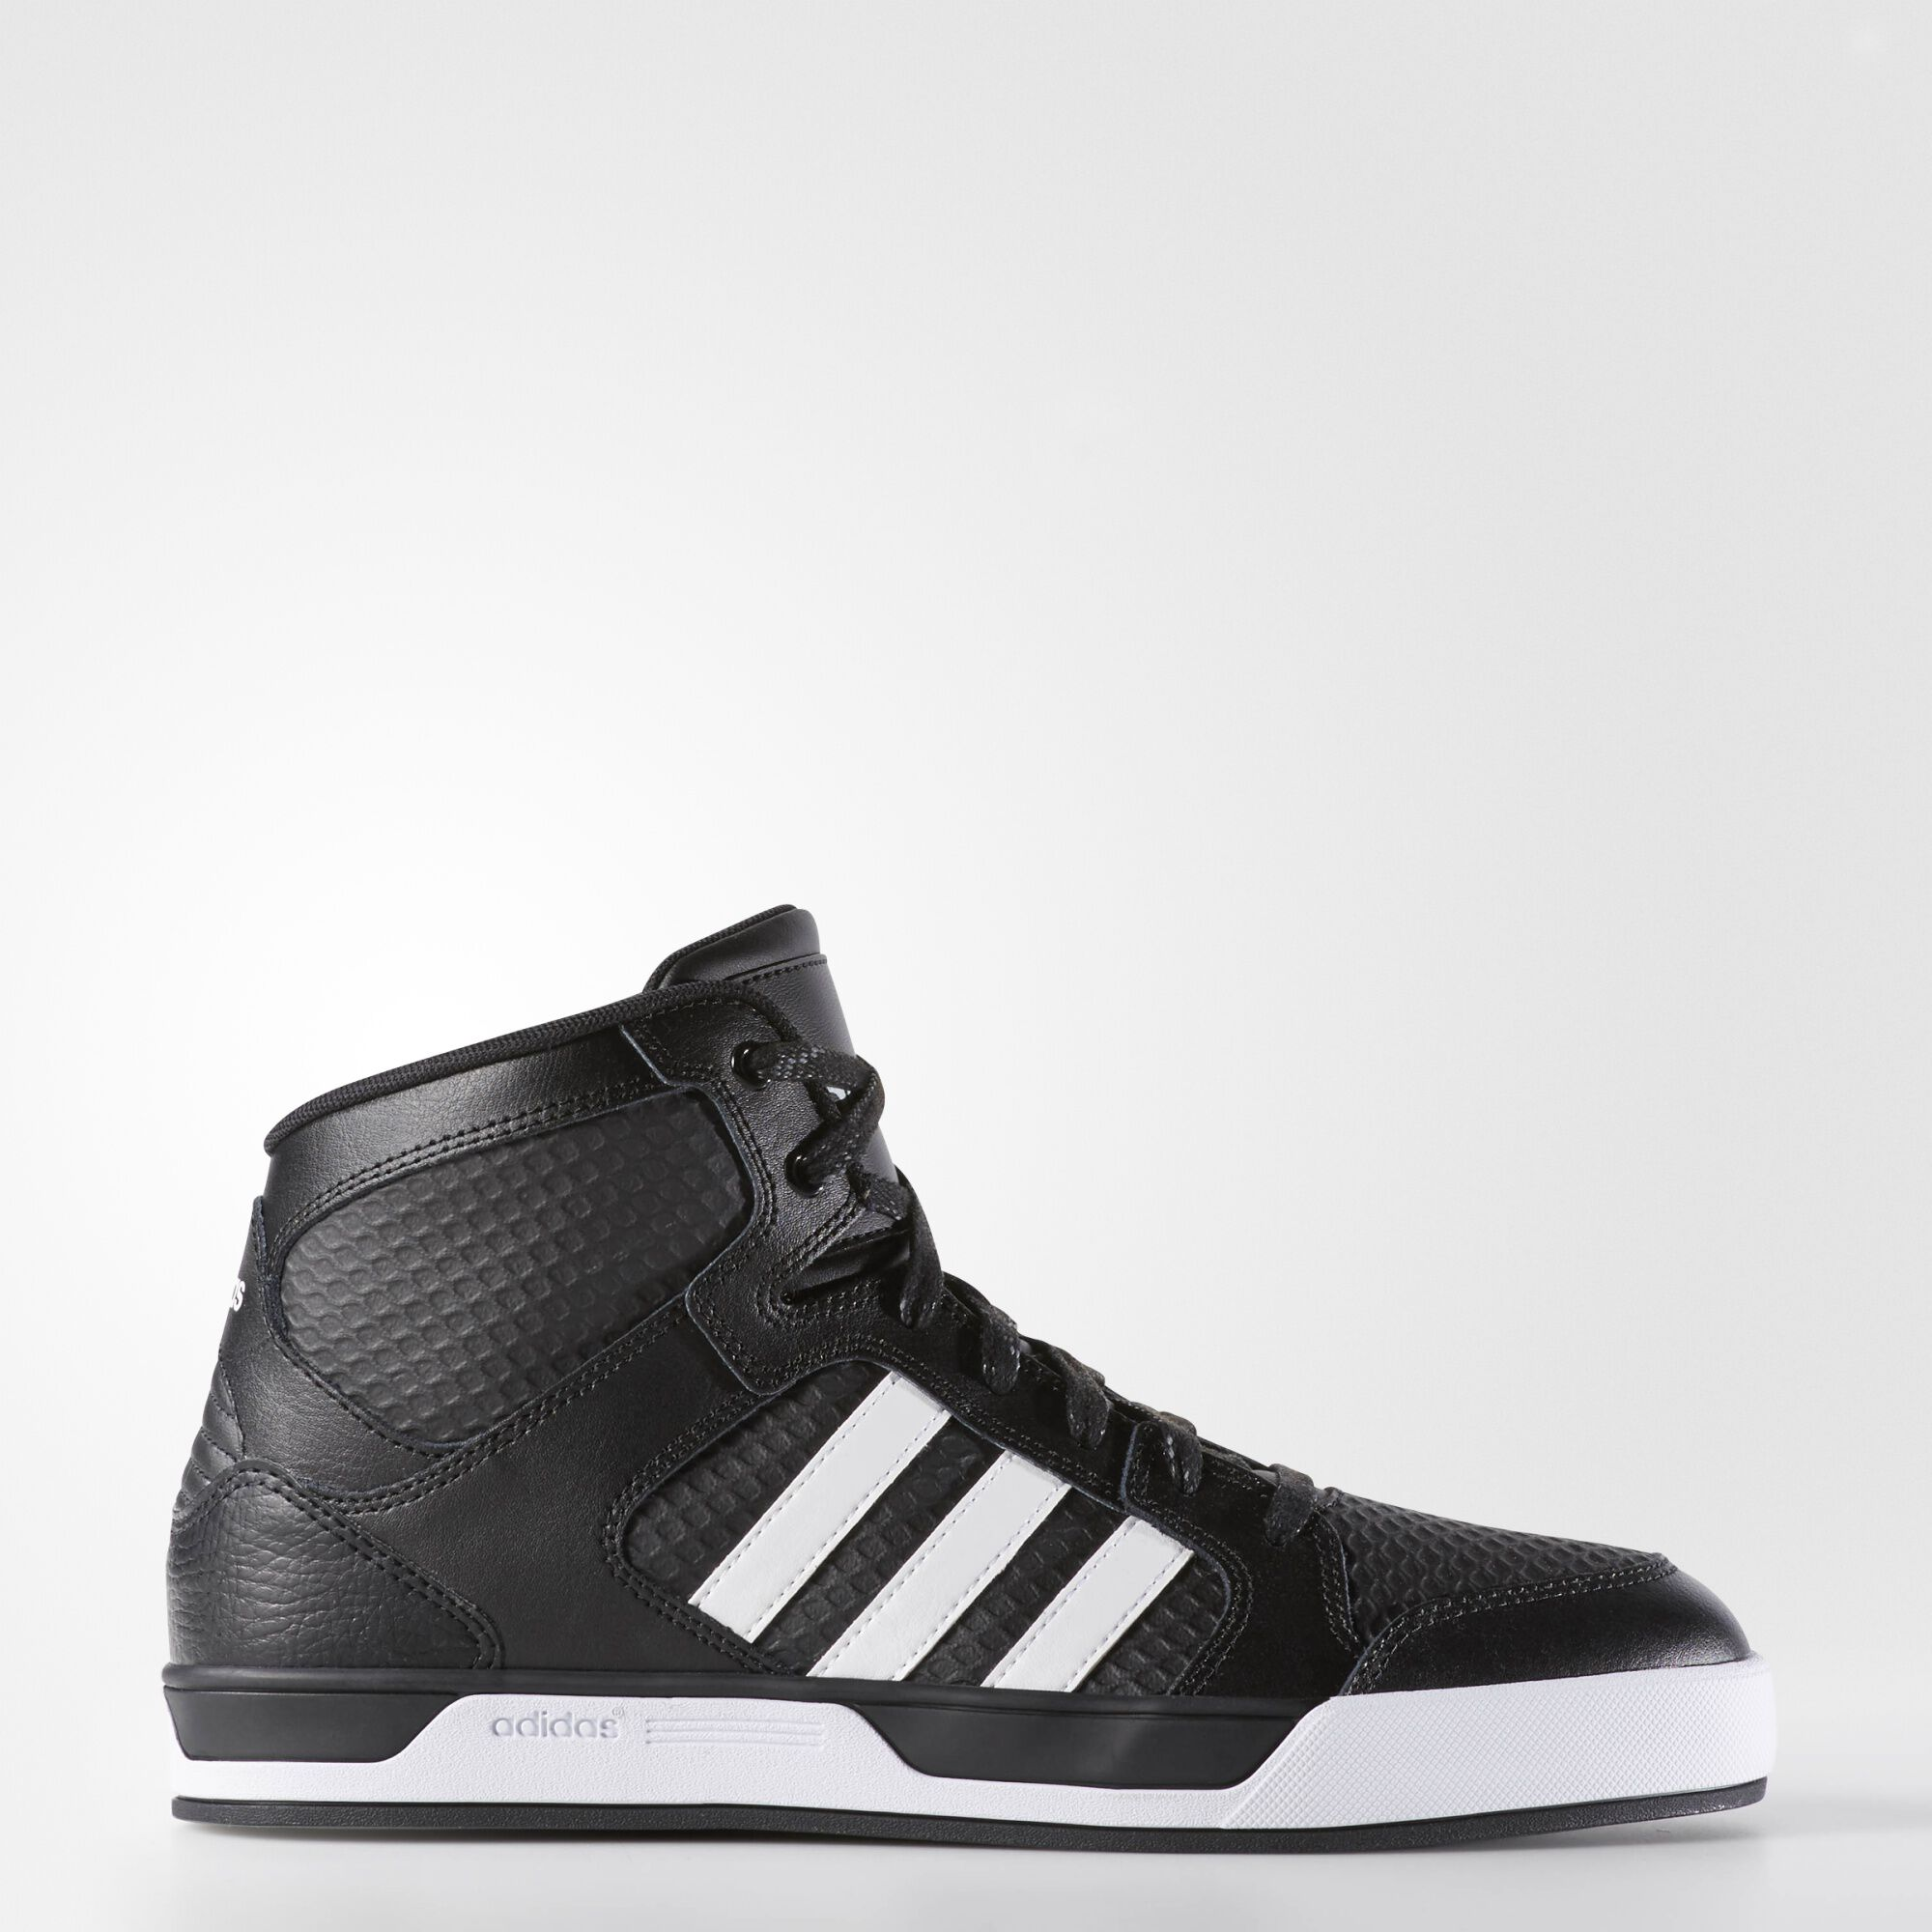 Adidas Neo Adidas Court Attitude Shoes In Best Quality Casual Black Red Blue Mens